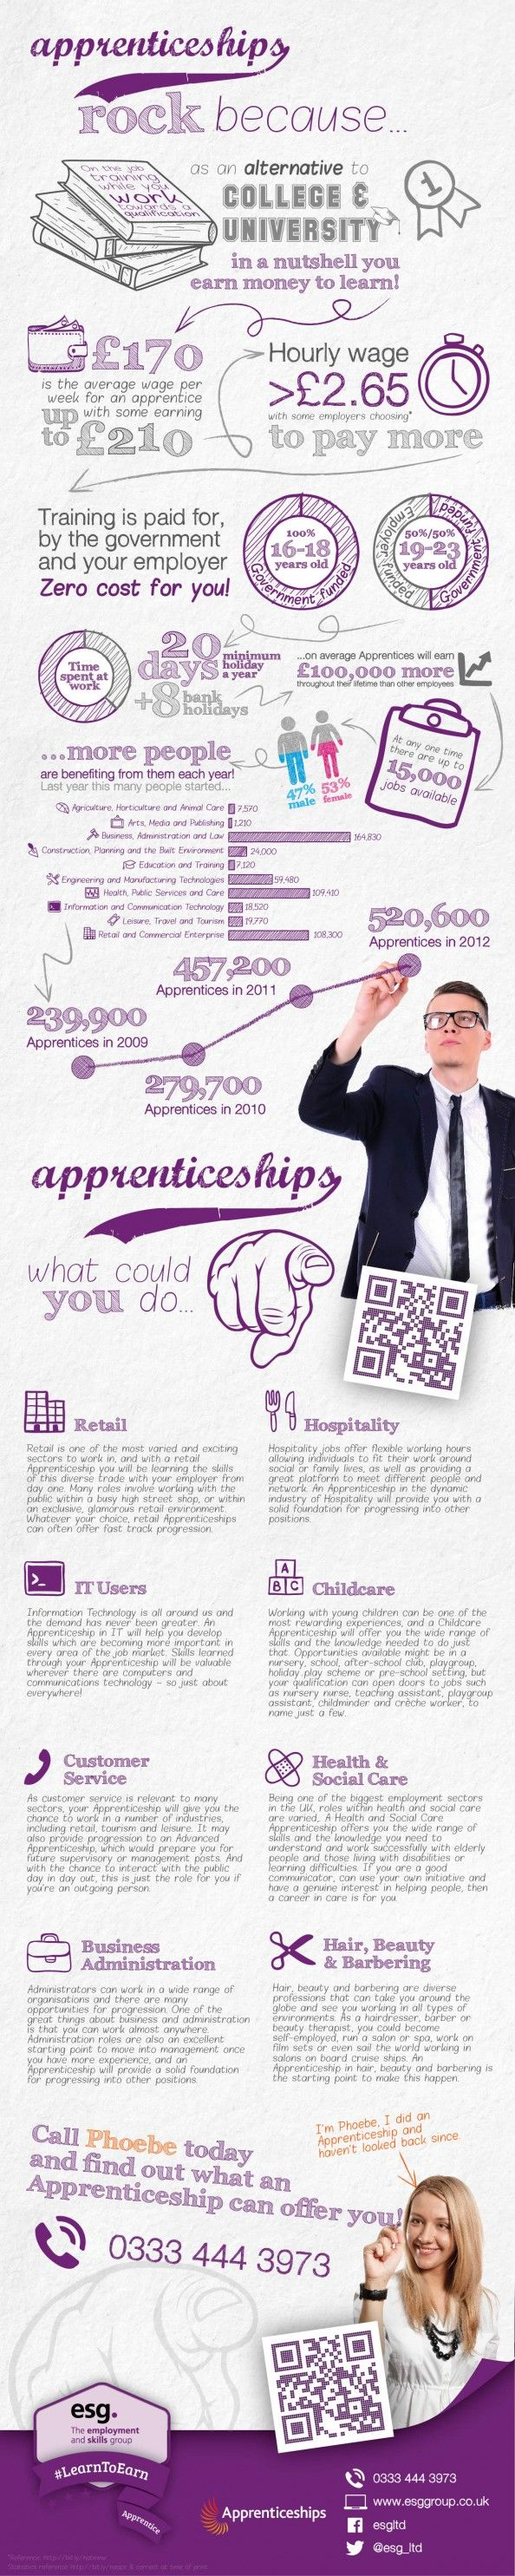 Apprenticeships rock - the facts and figures about Apprenticeships